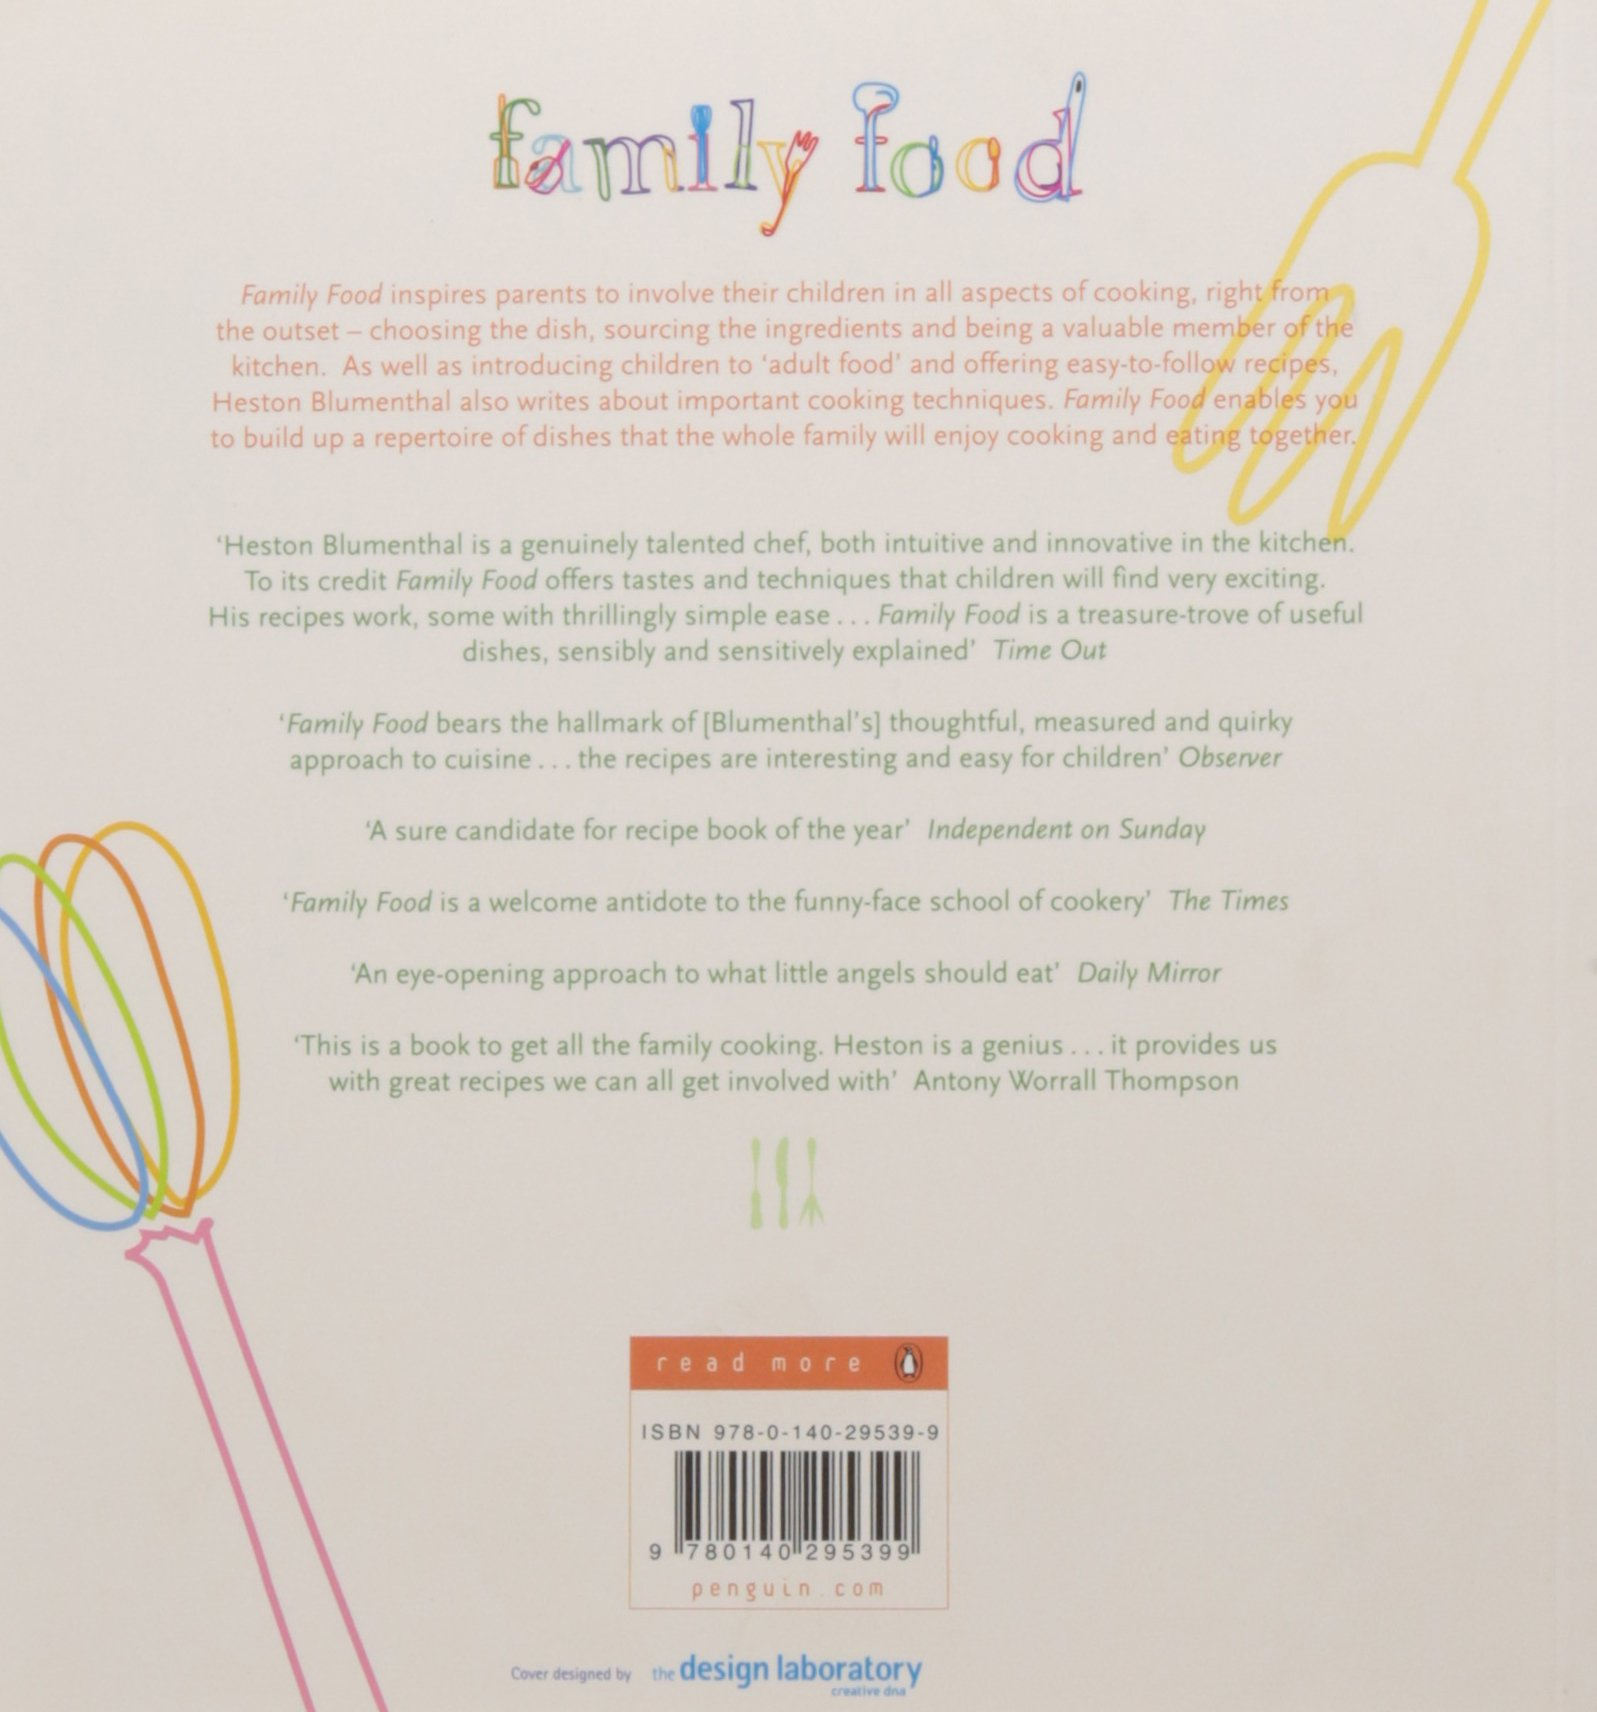 Family food a new approach to cooking penguin cookery library family food a new approach to cooking penguin cookery library amazon heston blumenthal 8601300098098 books forumfinder Choice Image